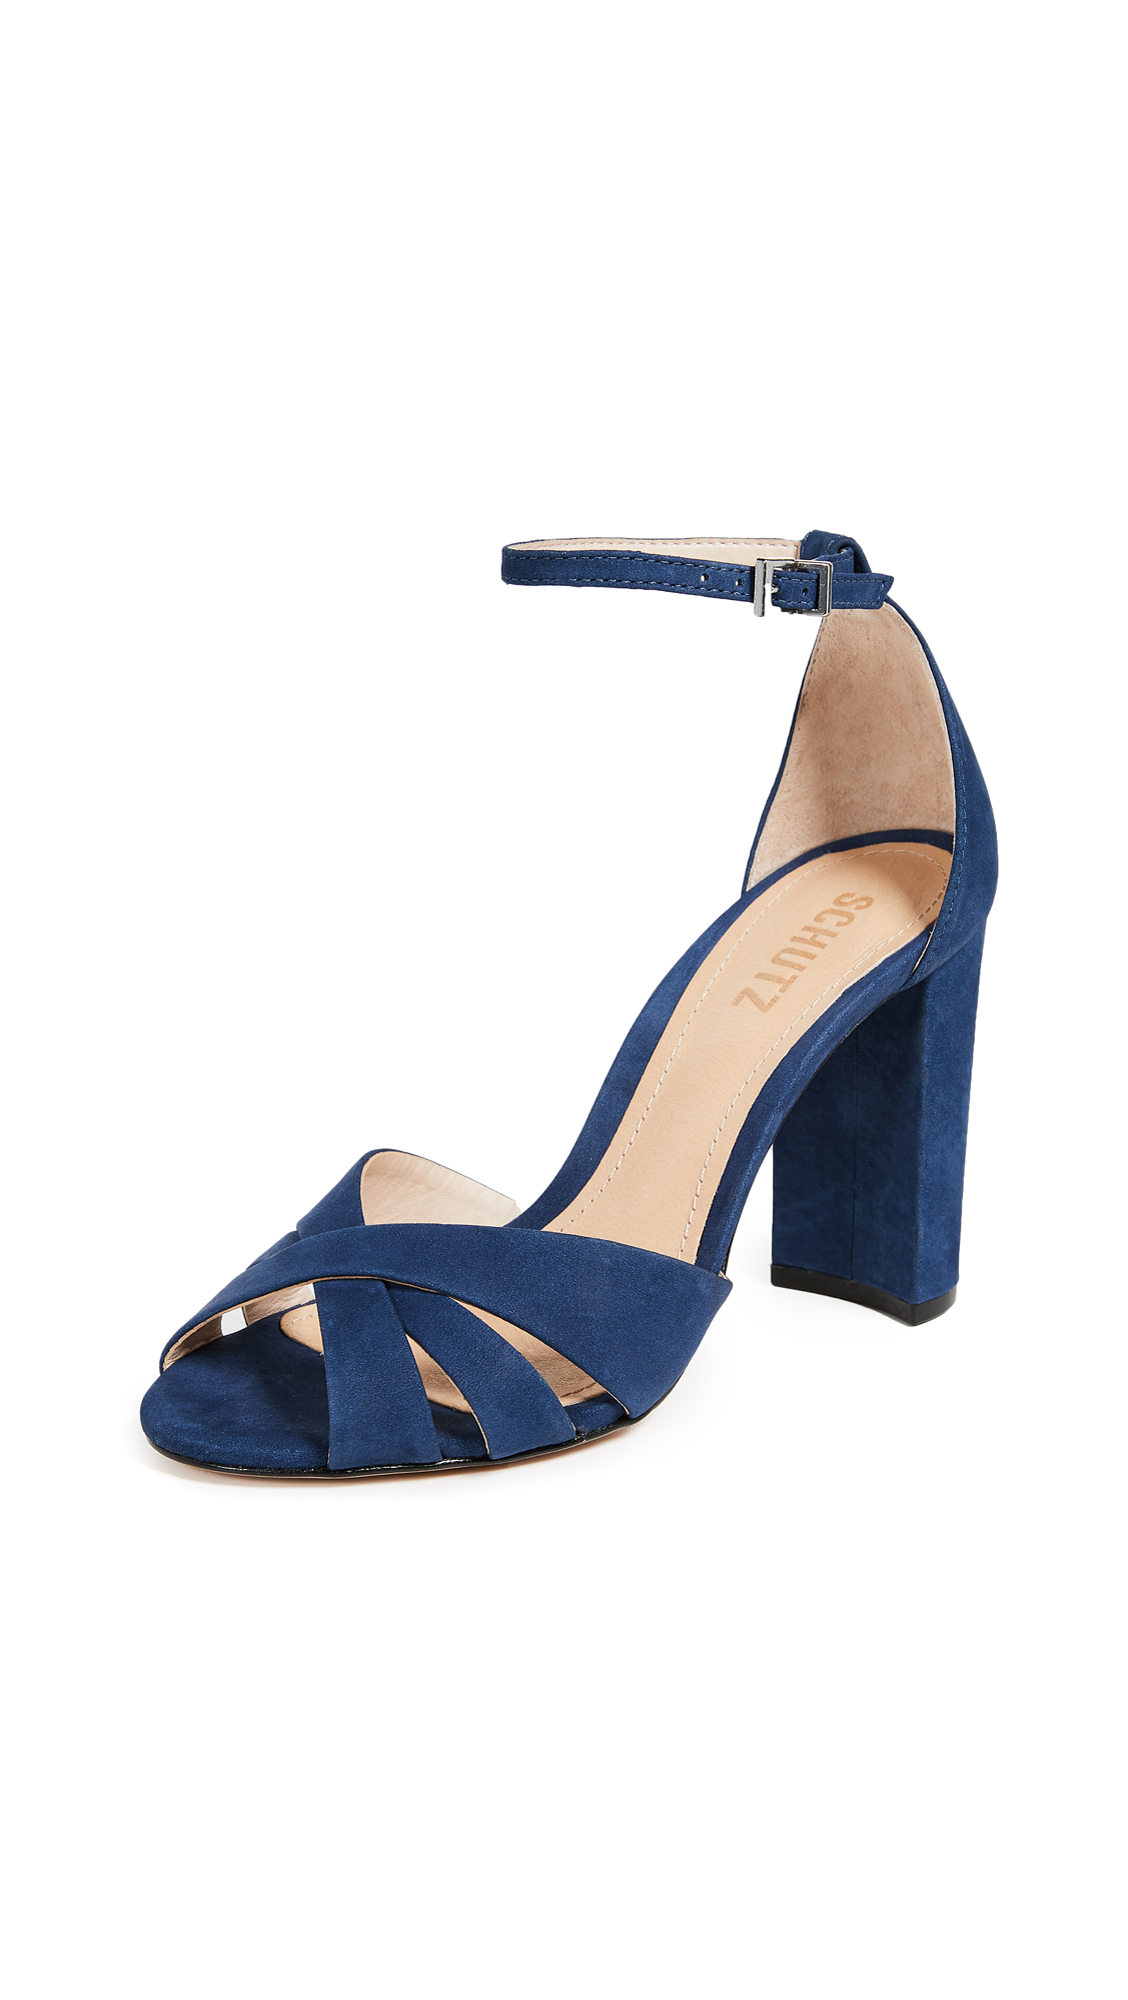 Schutz Alzira Block Heel Sandals - Dress Blue